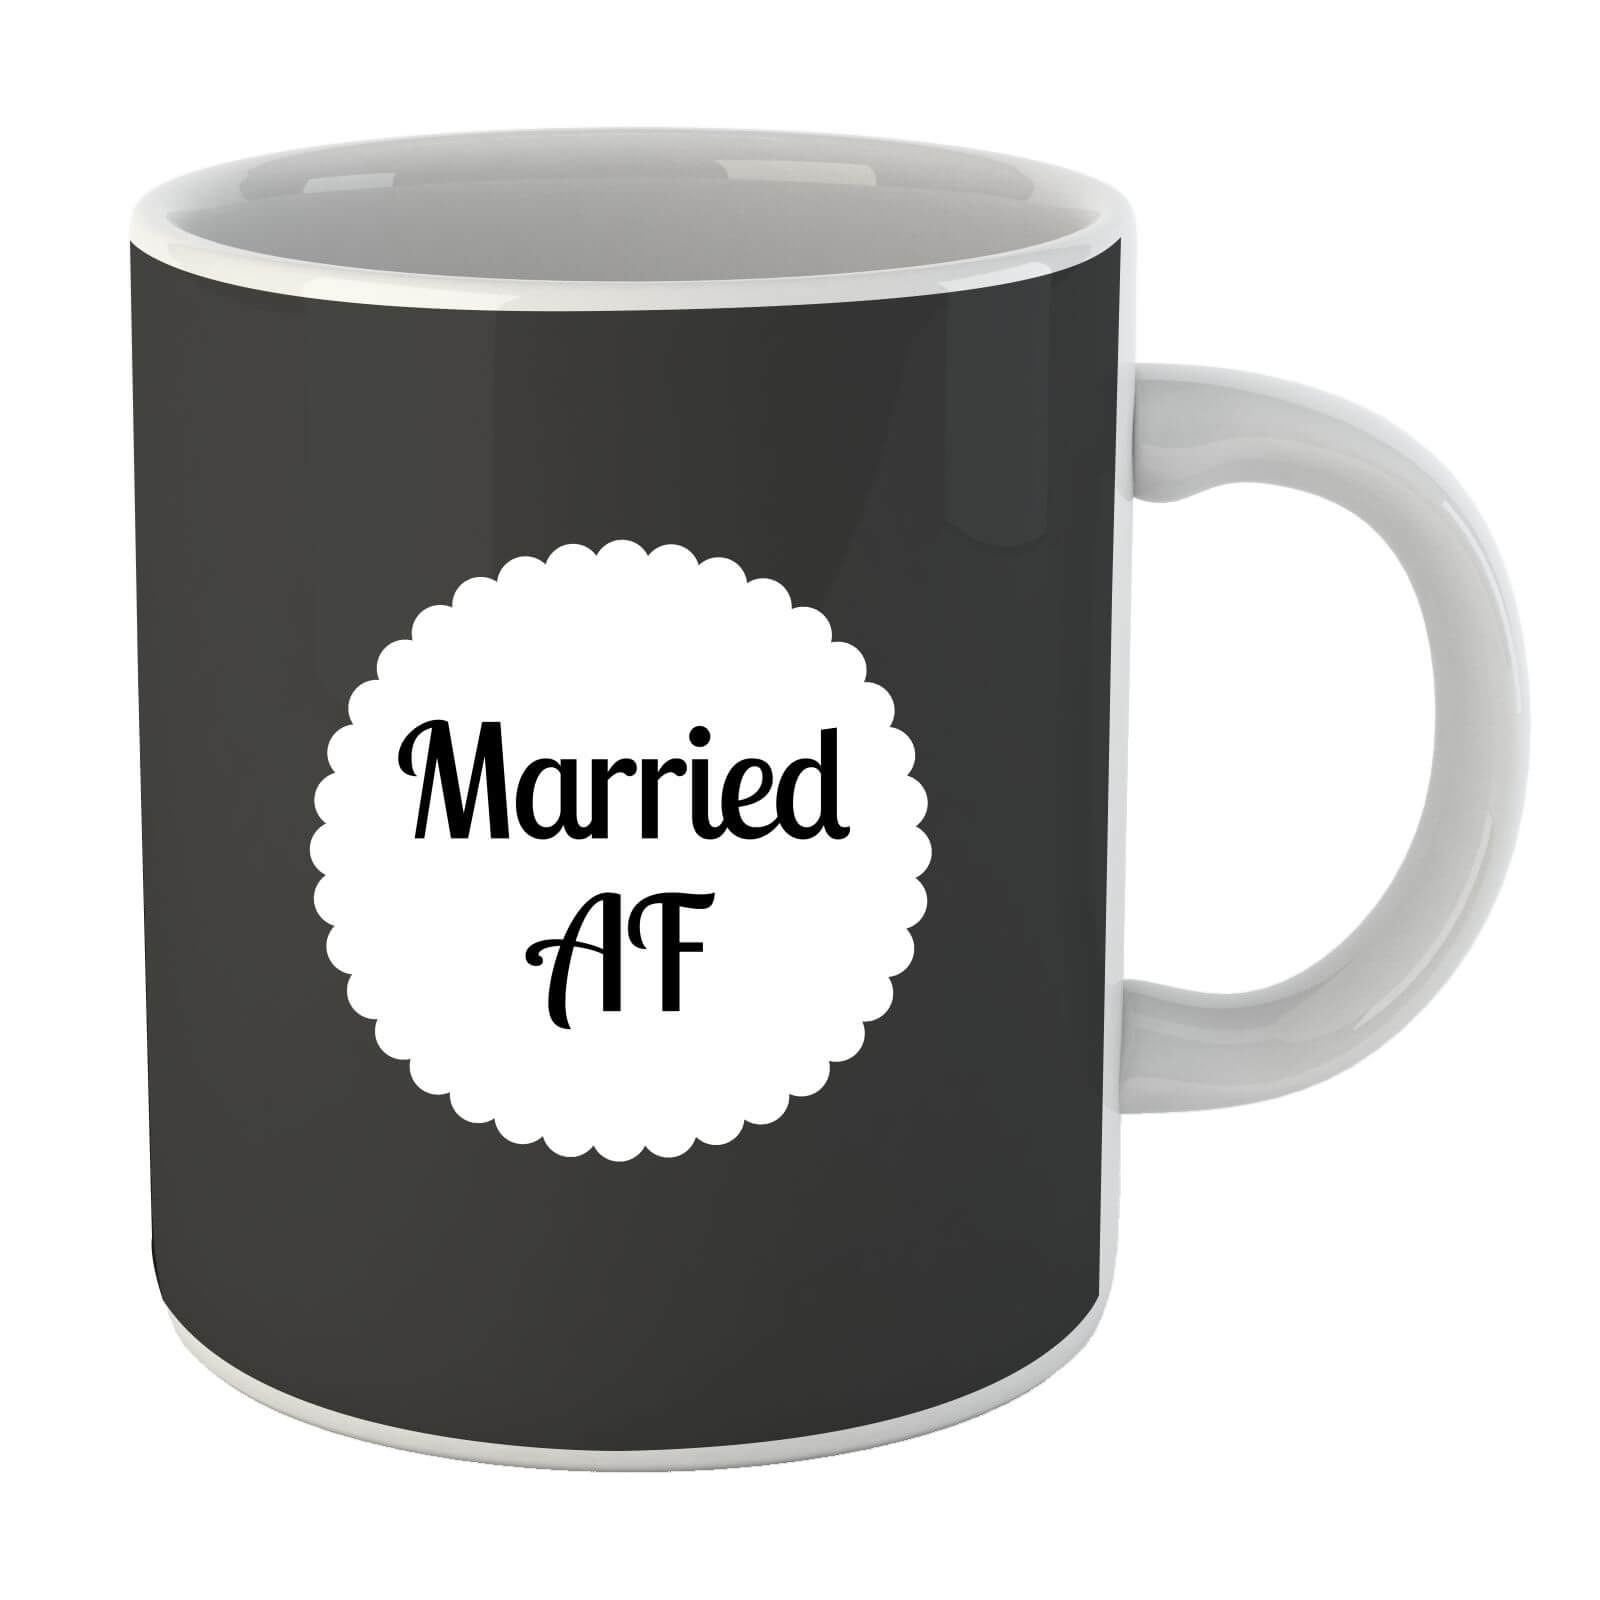 Married AF Mug